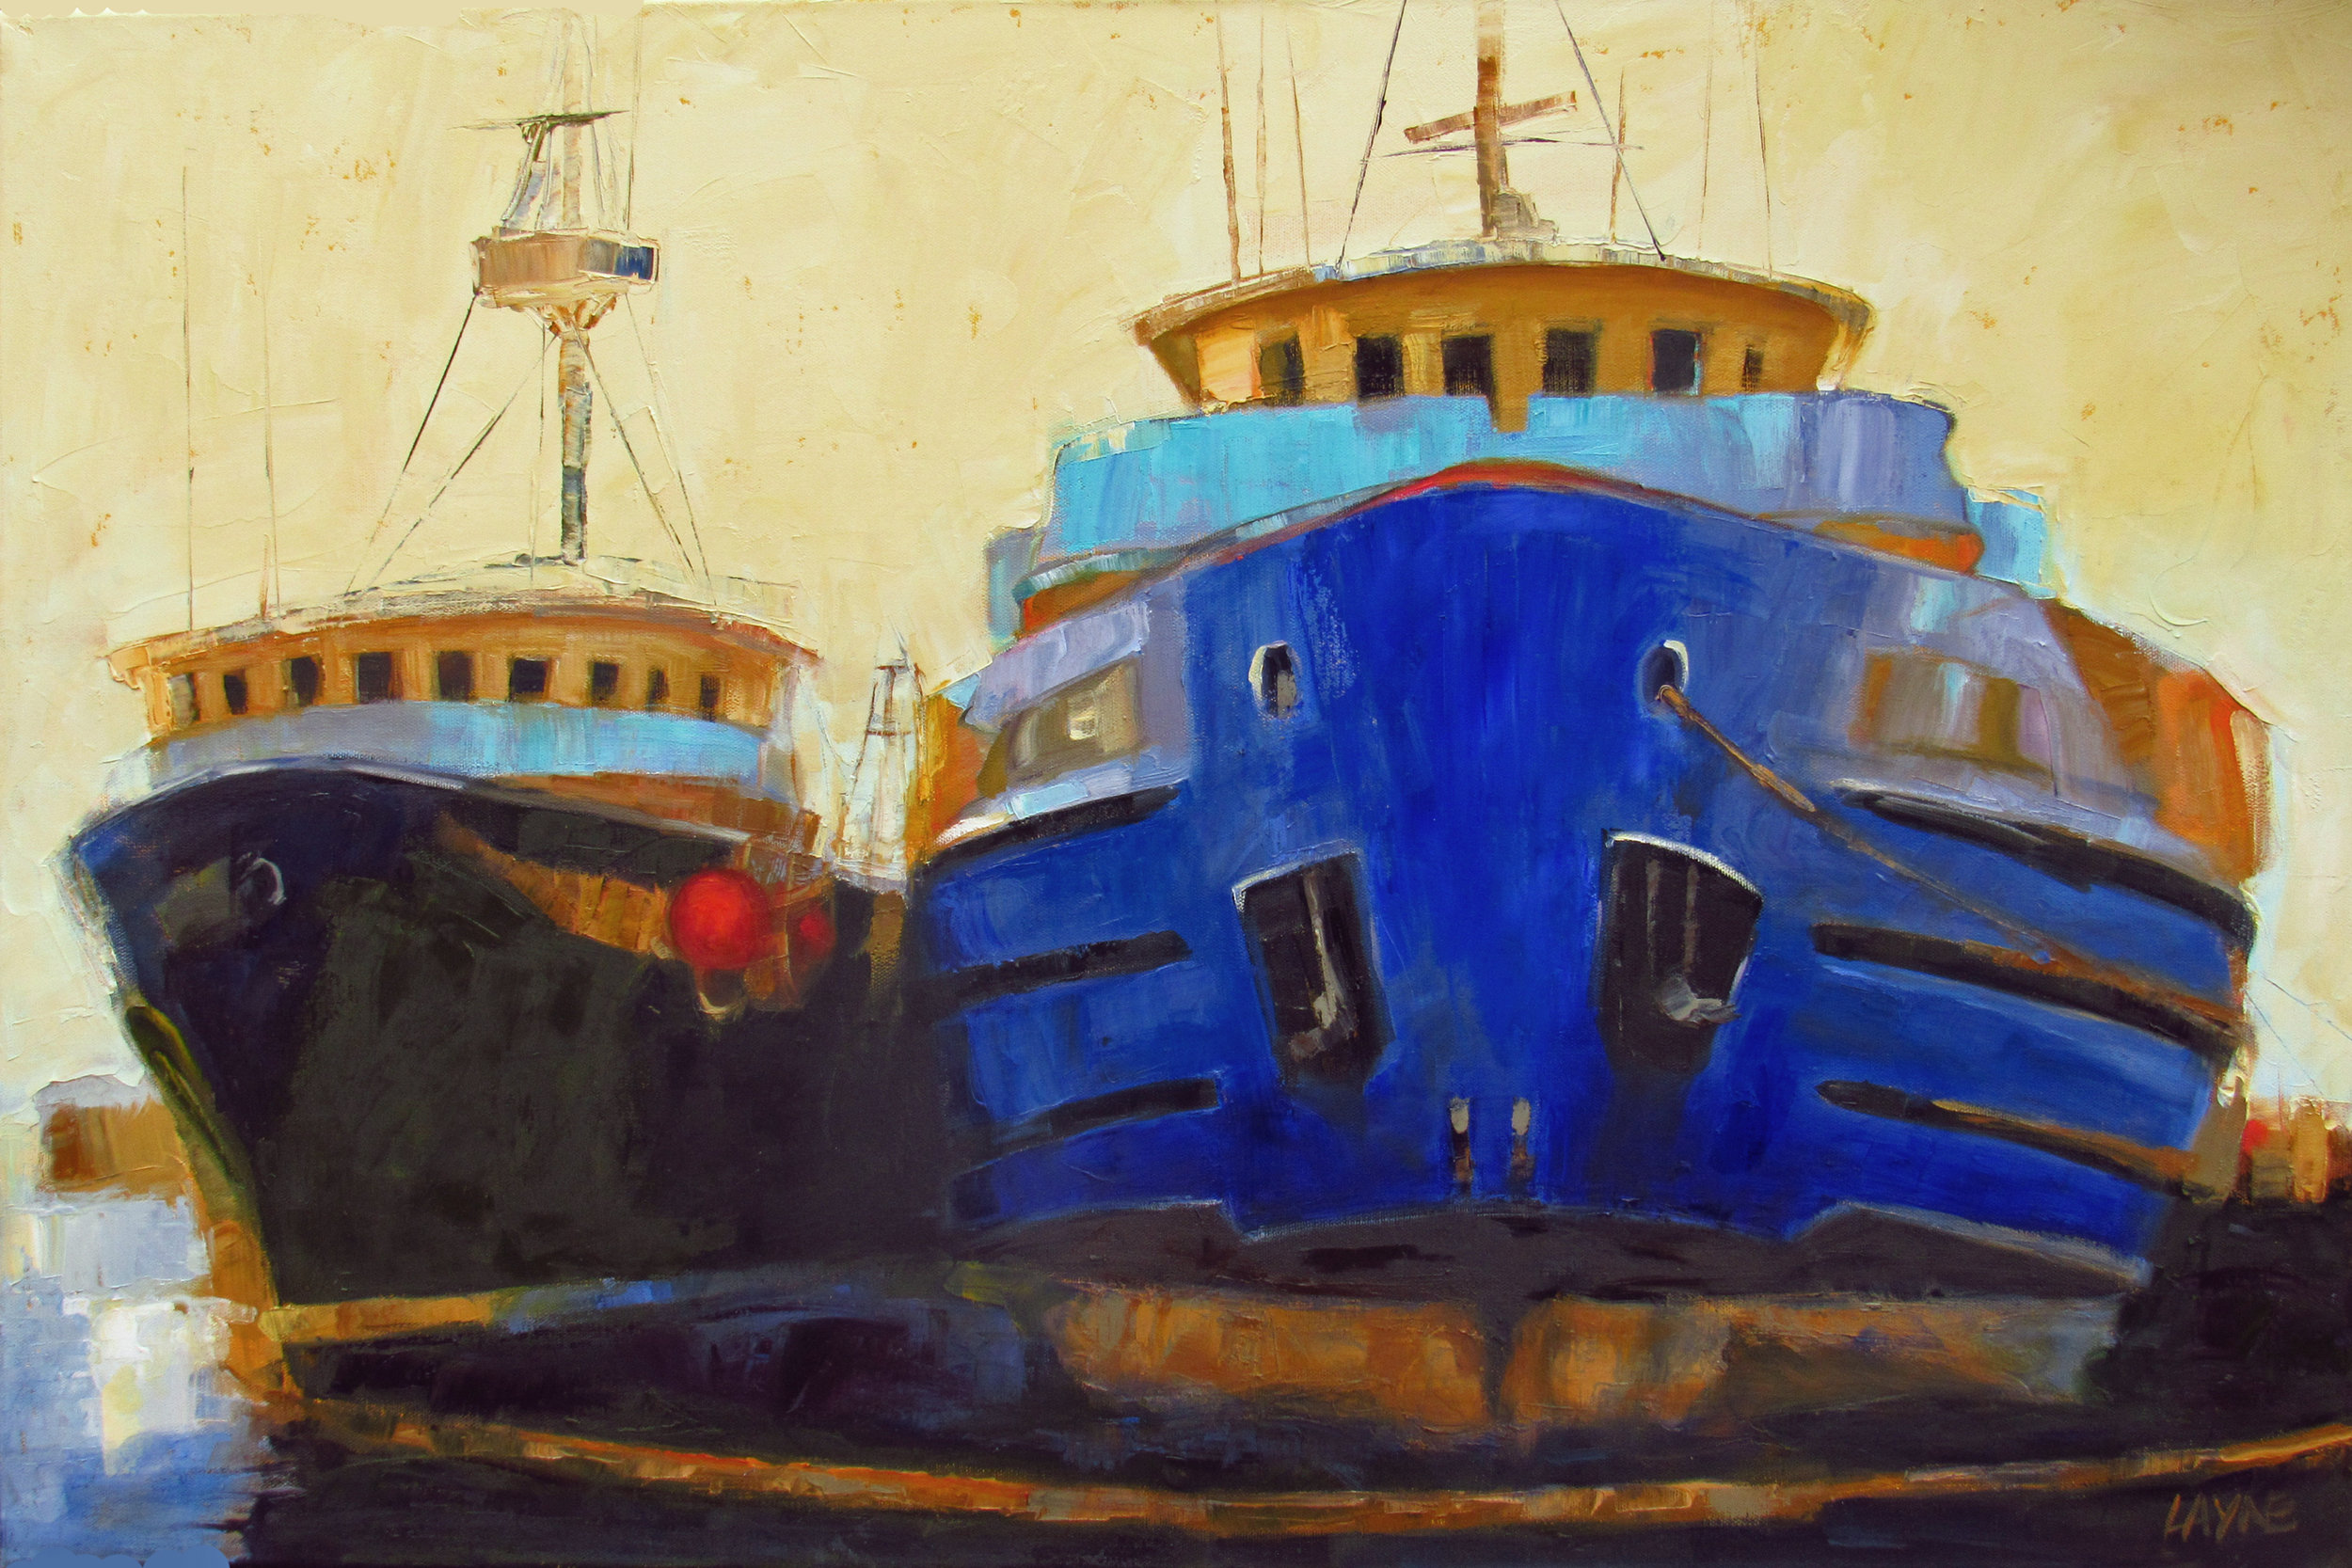 Two Tugs Tied#Oil on Canvas#24 x 36 inches#$1,850